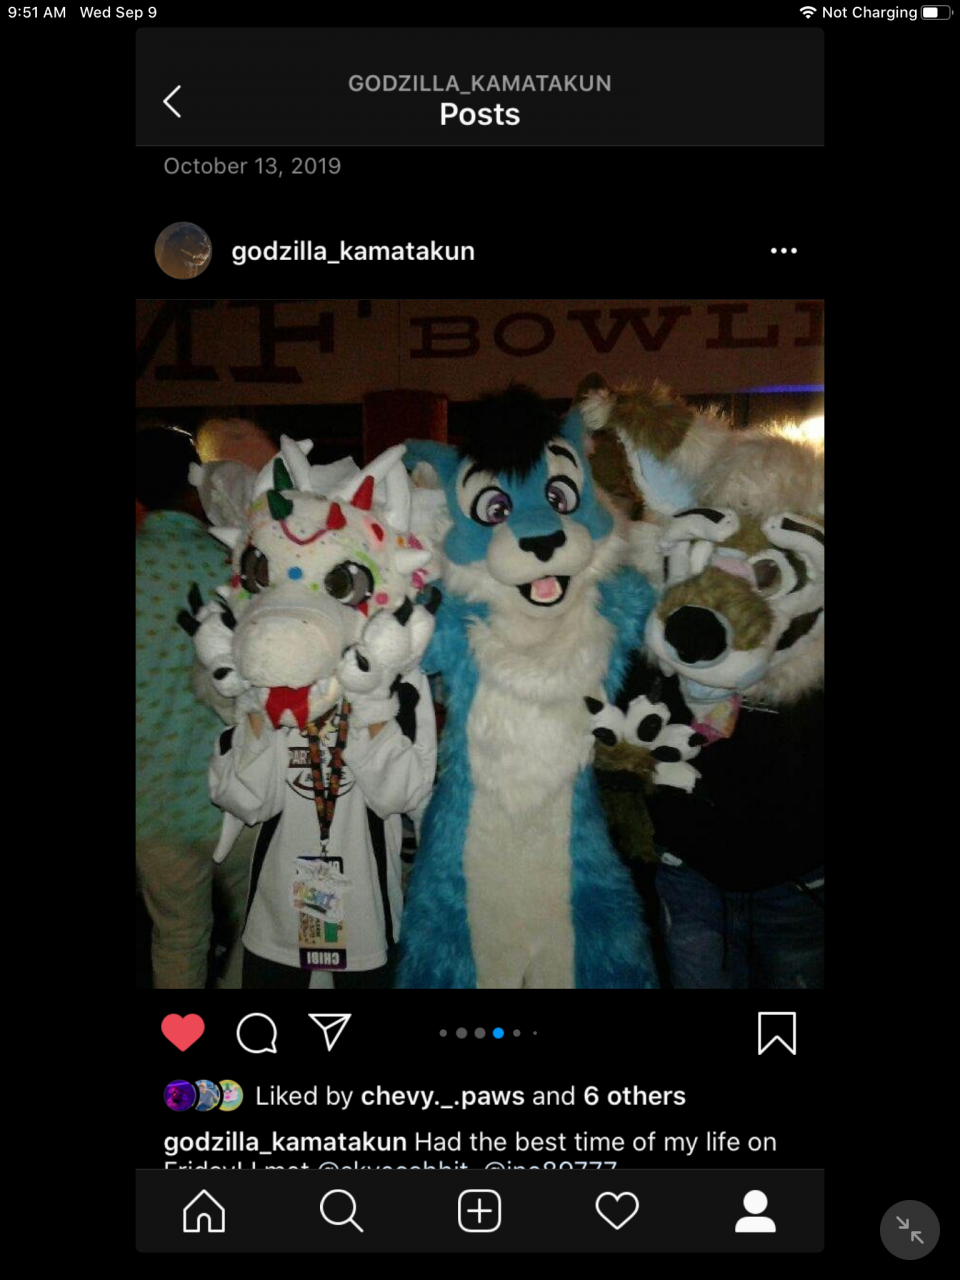 Throwback to exactly a year ago yesterday!! Best day of my life 2020-09-09 - Me, Skye Cabbit, and Ocean